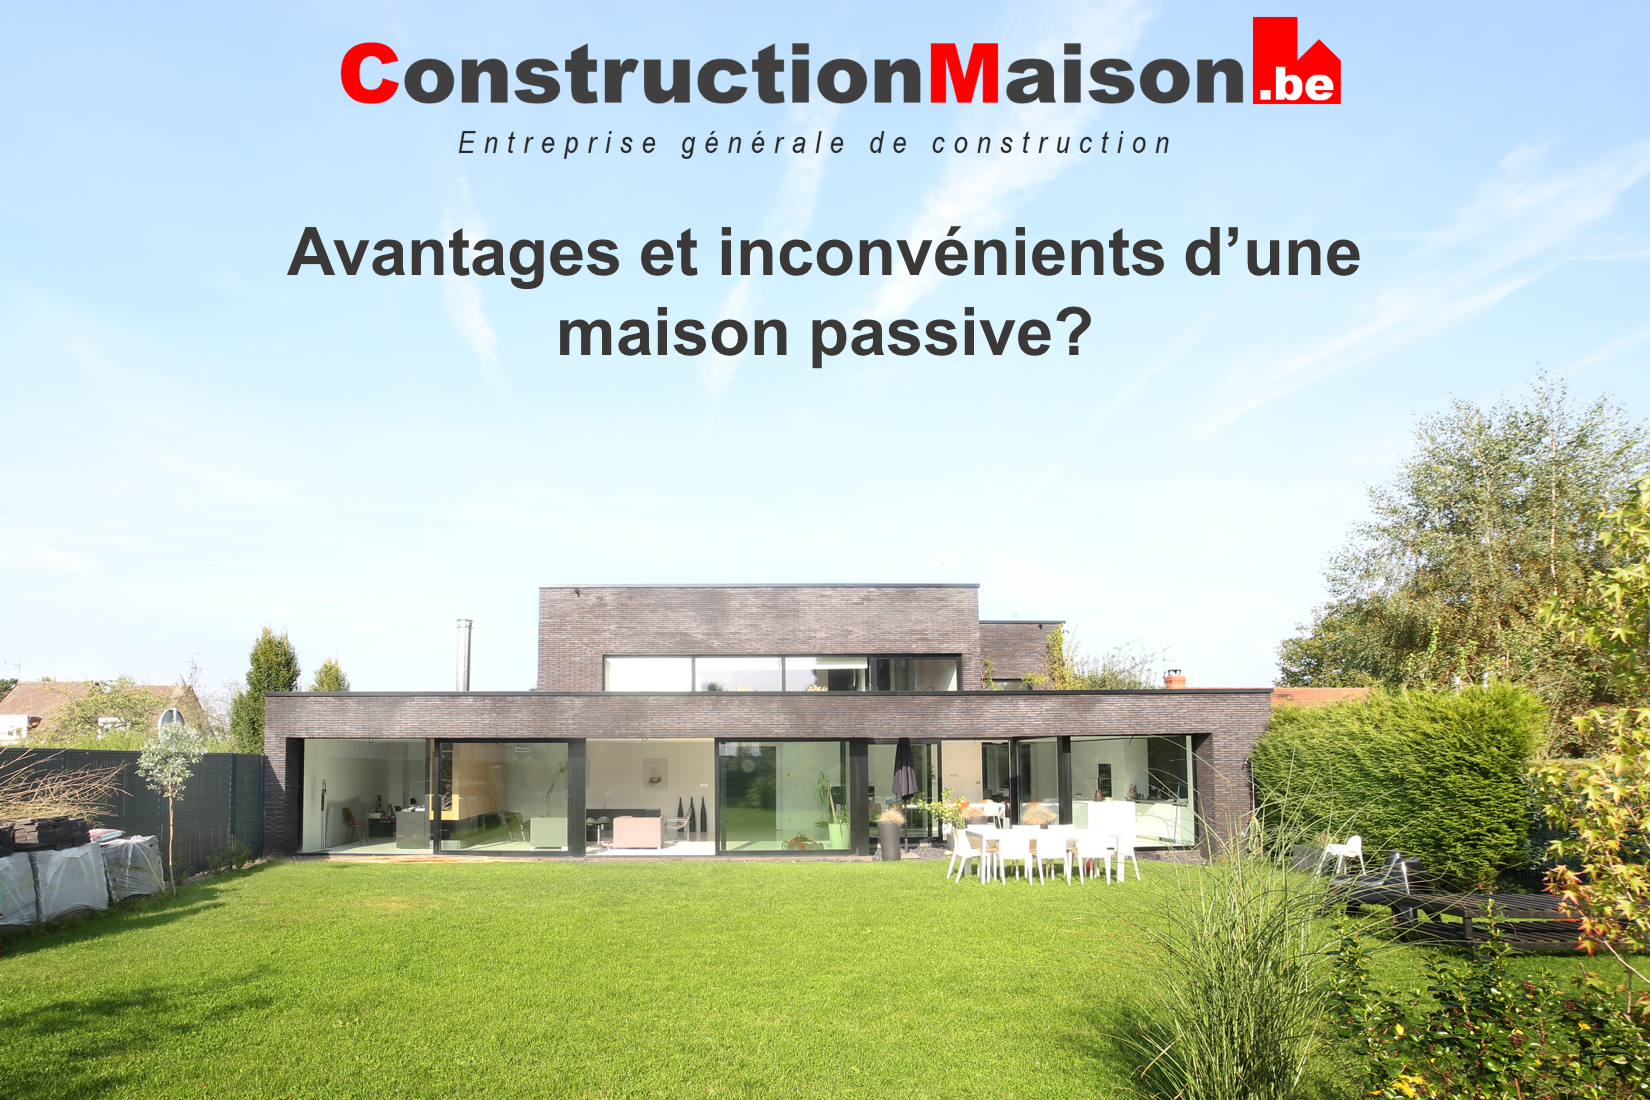 prix d une maison passive finest le concept de la maison passive a merg depuis les annes aprs. Black Bedroom Furniture Sets. Home Design Ideas